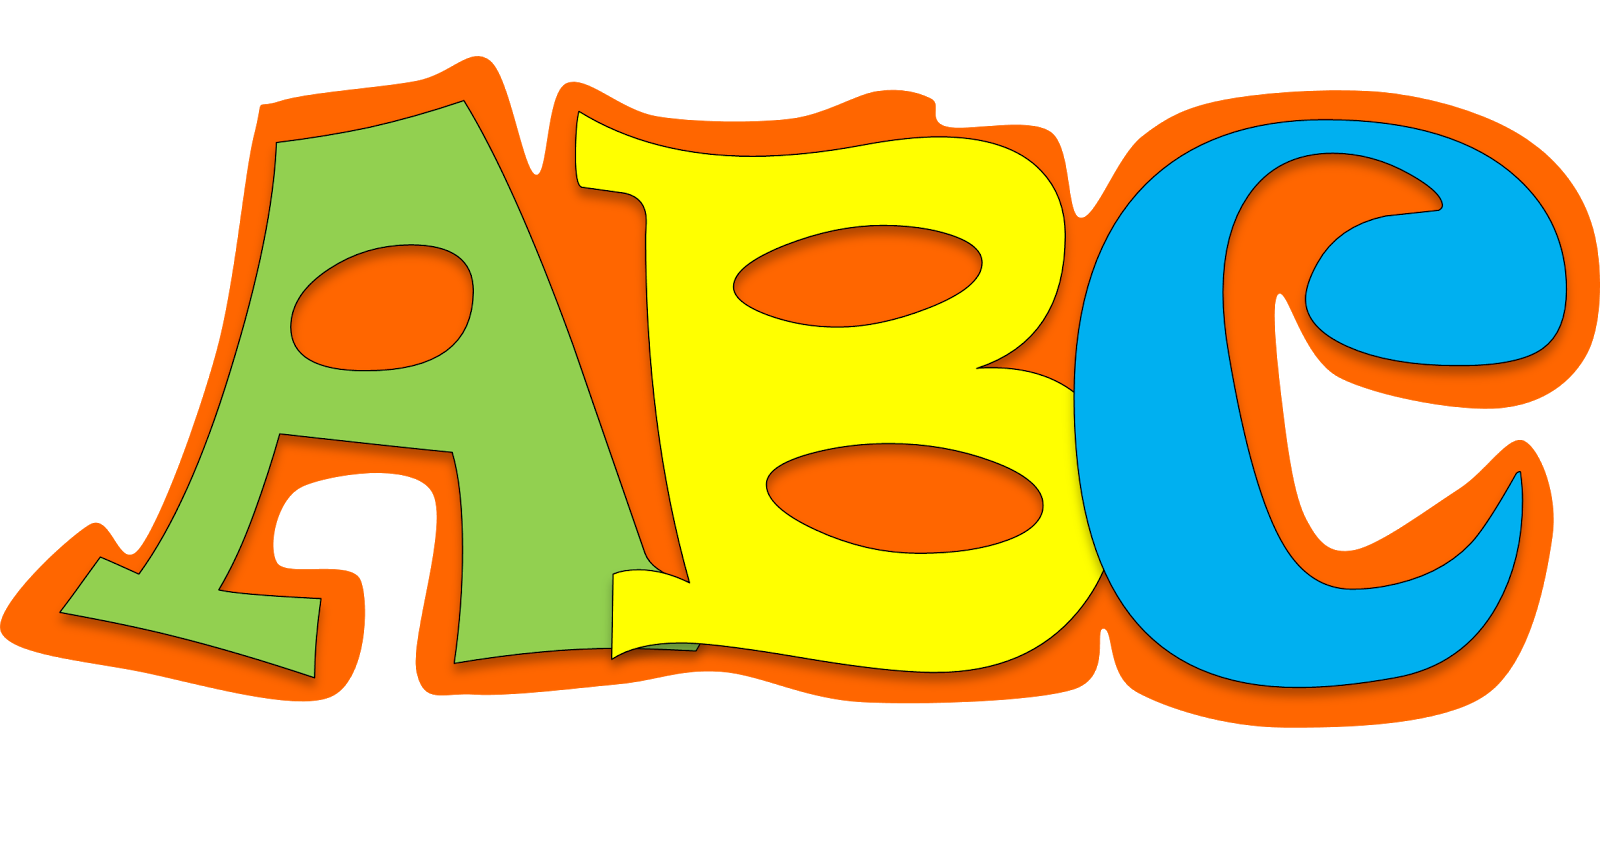 R clipart abc, R abc Transparent FREE for download on WebStockReview.